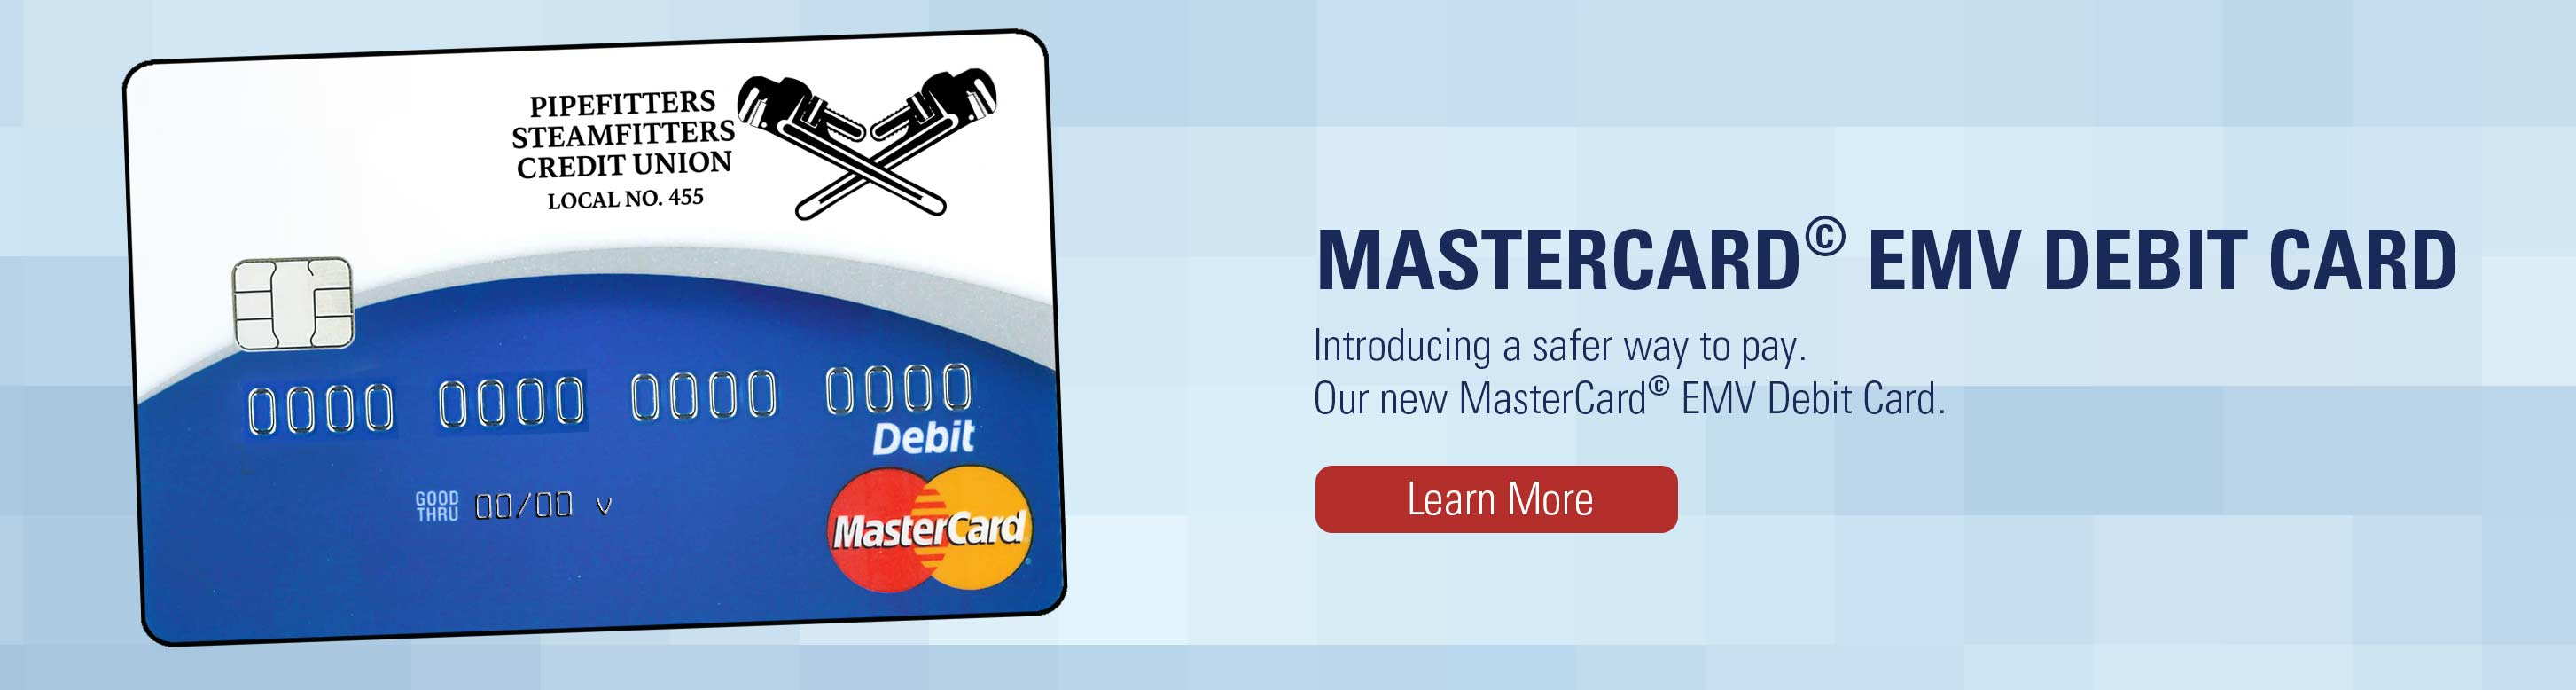 Mastercard EMV Debit Card. Introducing a safer way to pay. Our new MasterCard EMV Debit Card. Learn more.